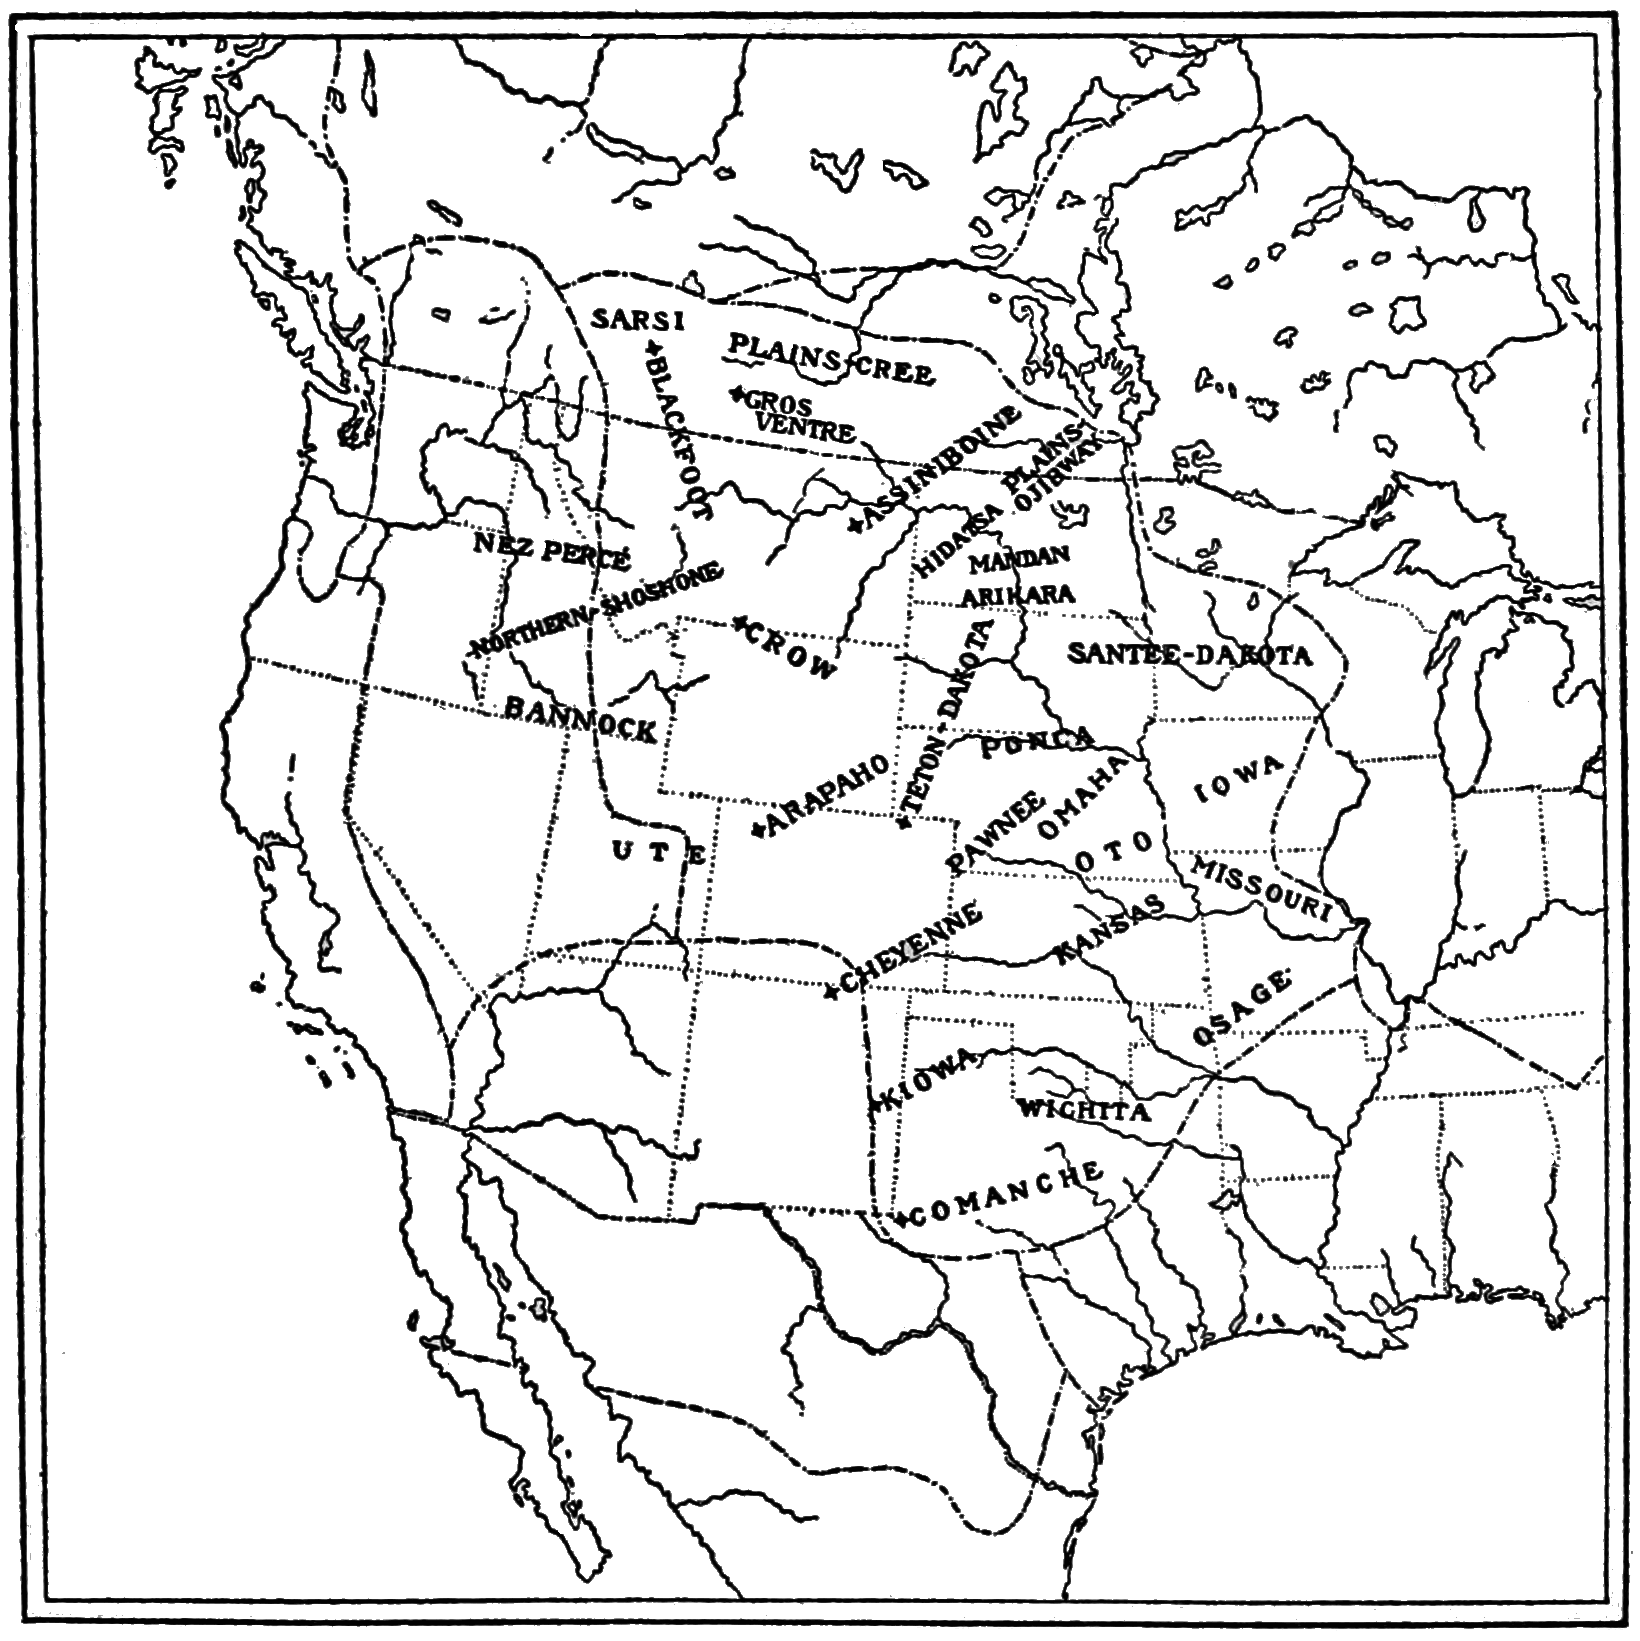 psm_v82_d443_map_of_the_area_of_the_plains_indians.png